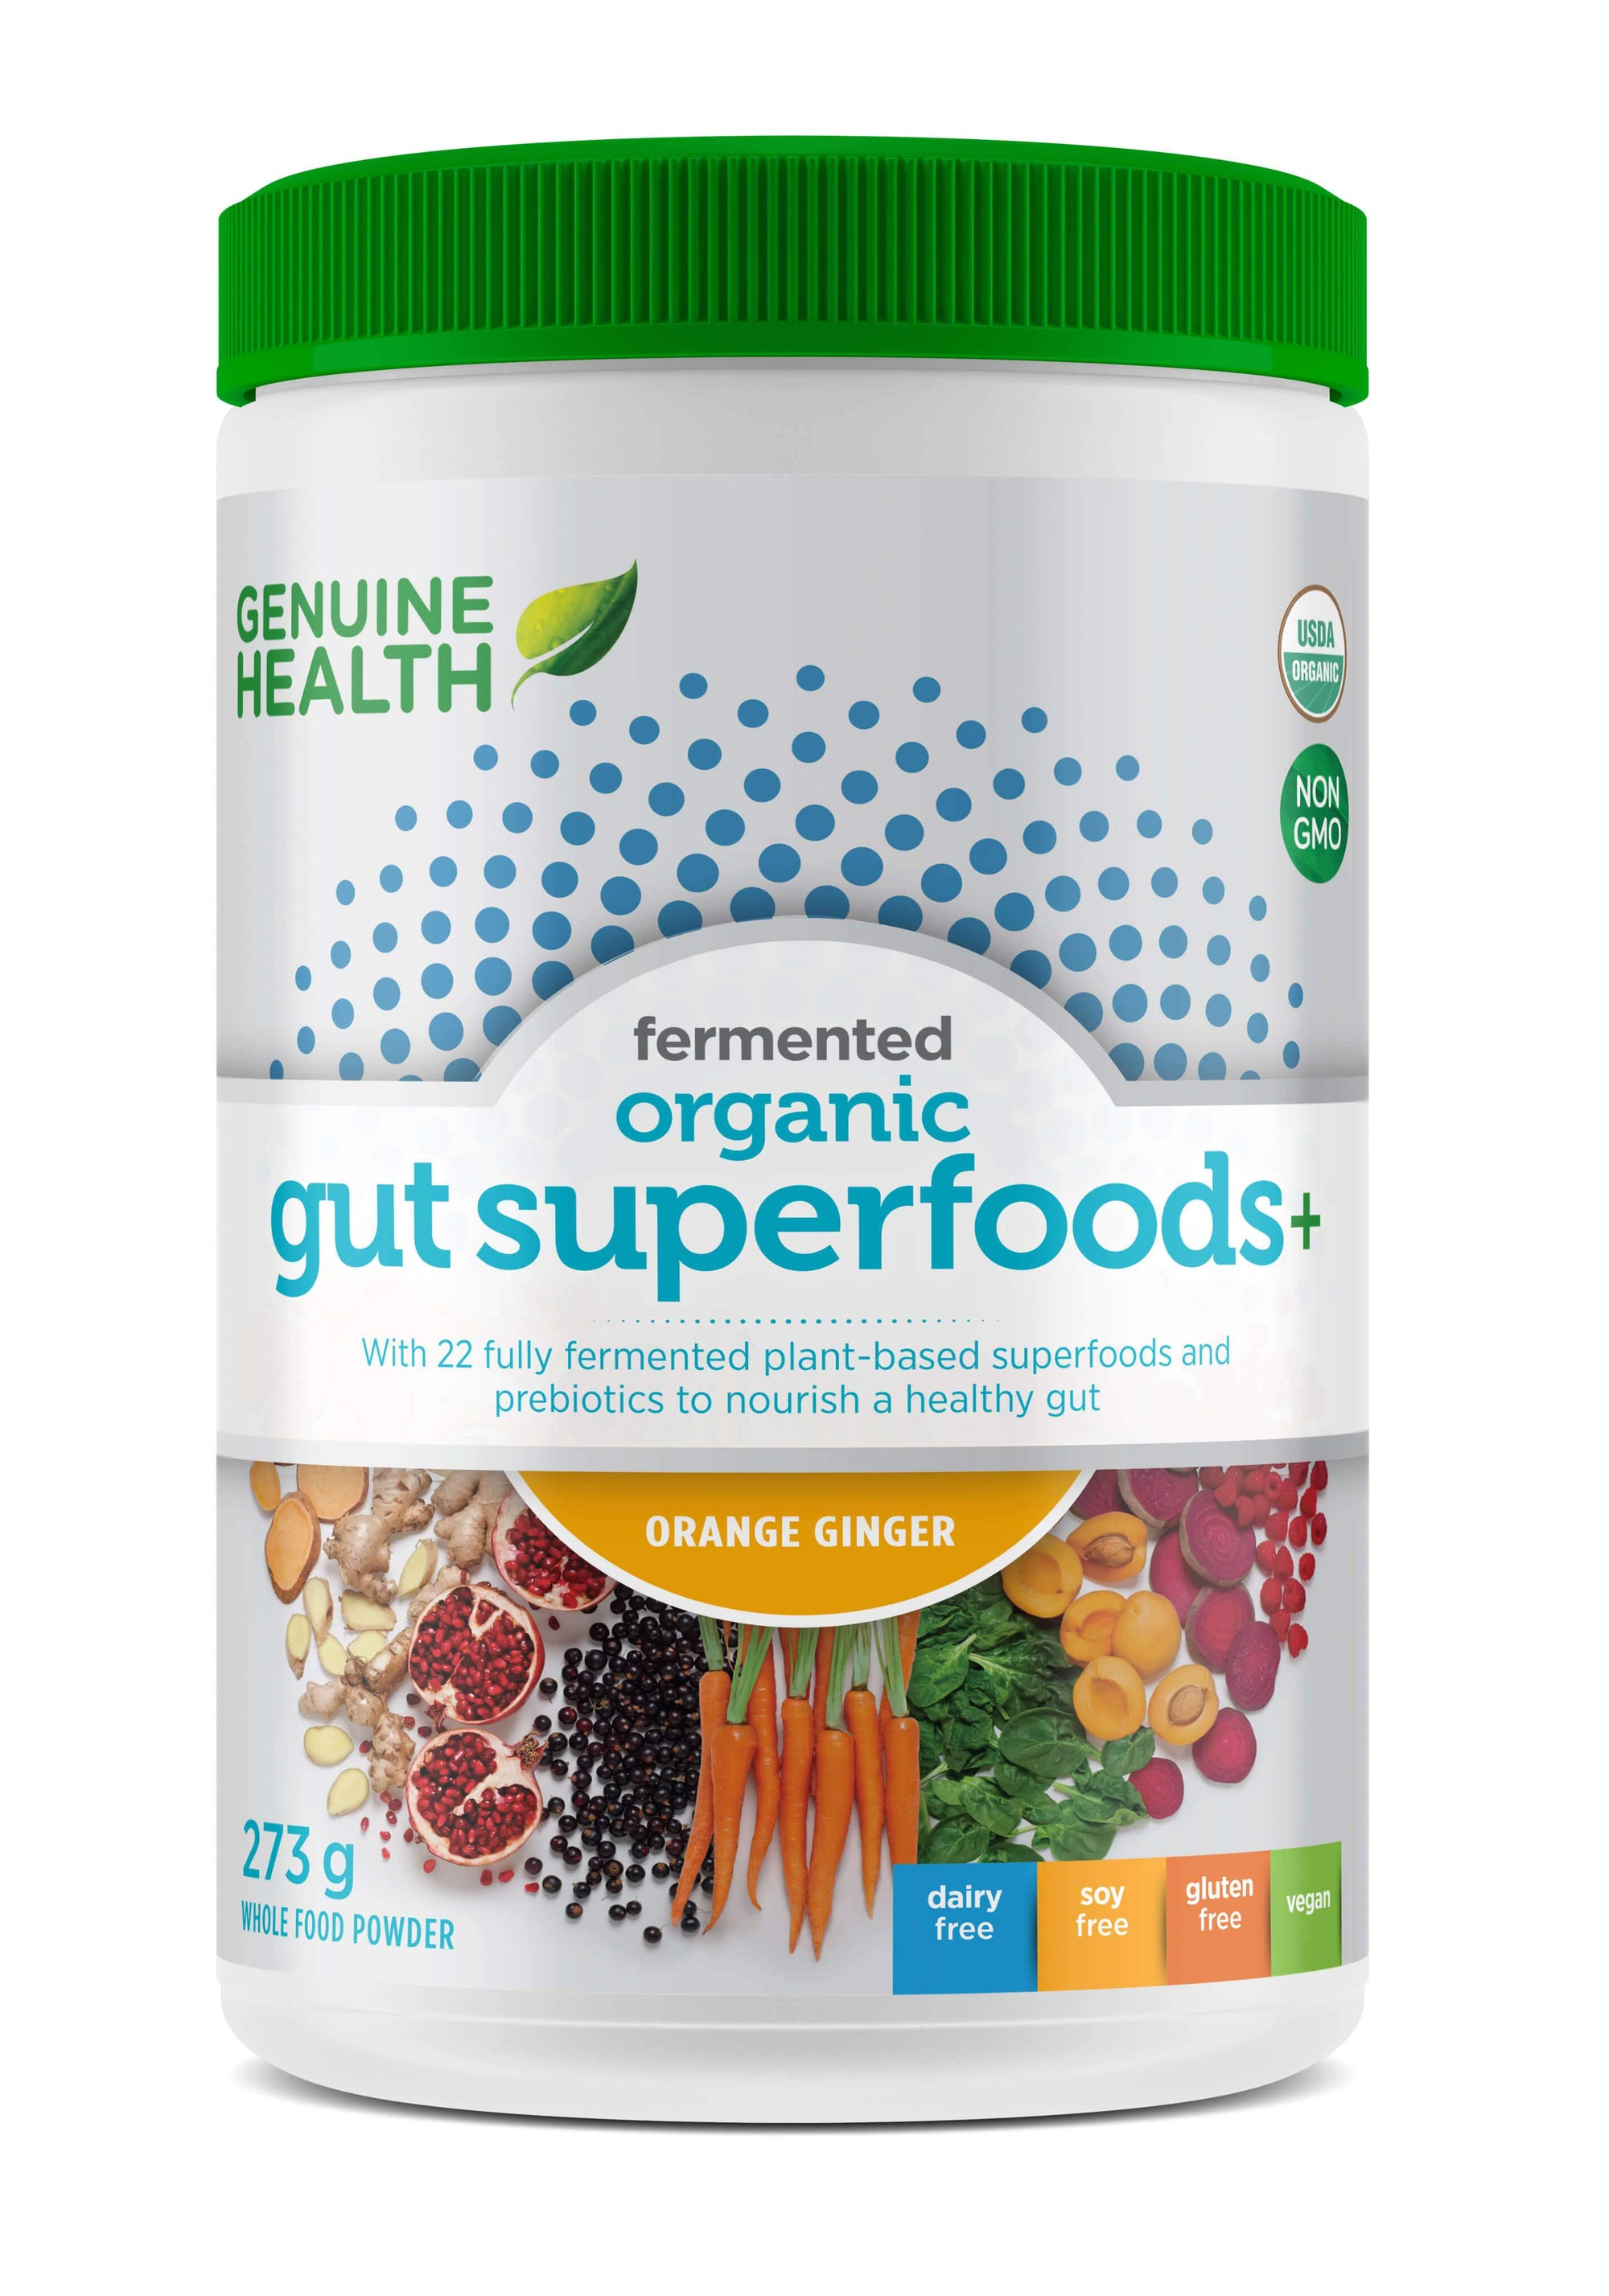 Supplements & Vitamins - Genuine Health - Fermented Gut Superfoods+, Orange Ginger, 273g